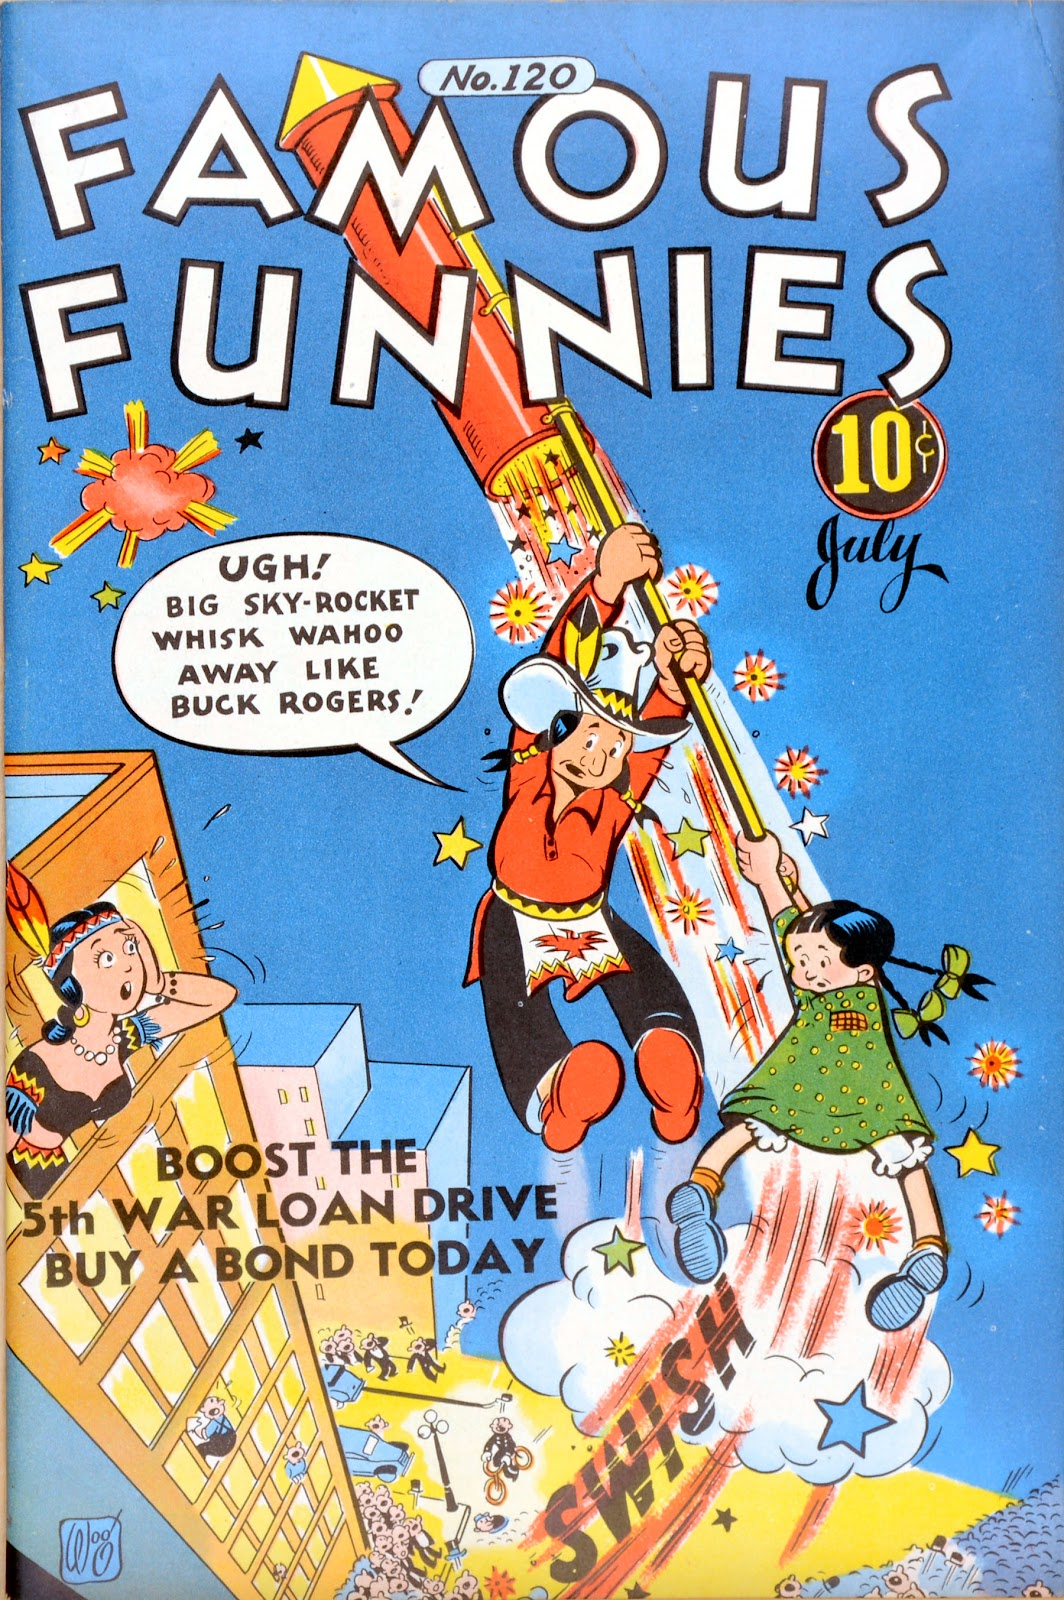 Read online Famous Funnies comic -  Issue #120 - 1